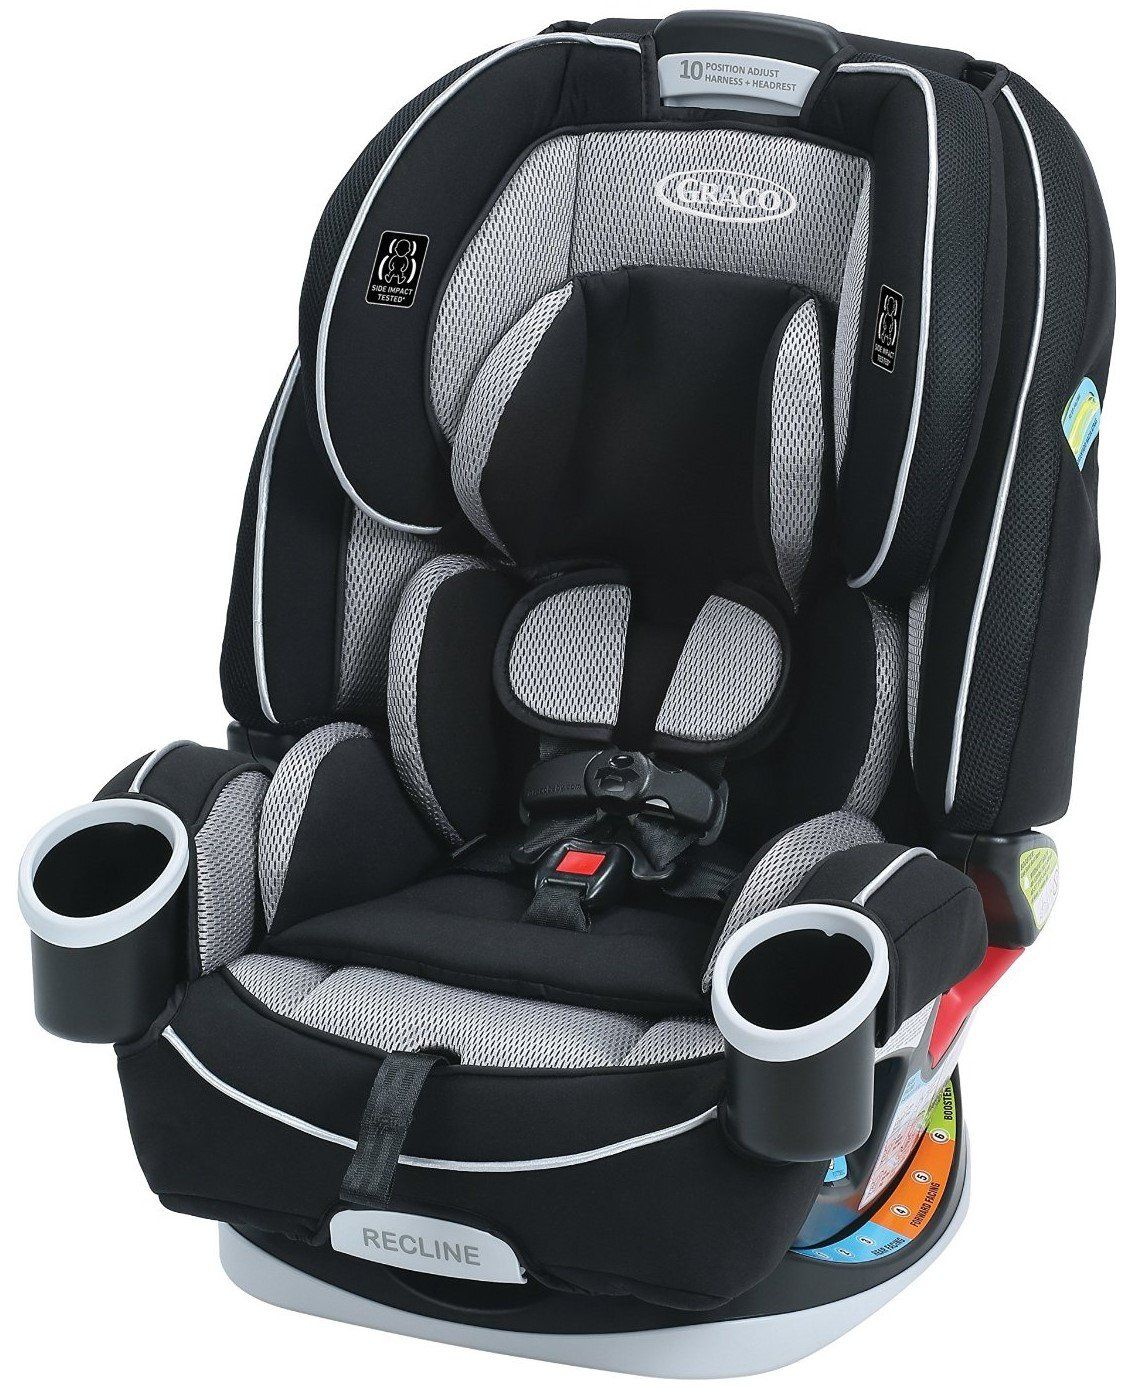 Graco 4ever AllinOne Car Seat (Matrix) Best